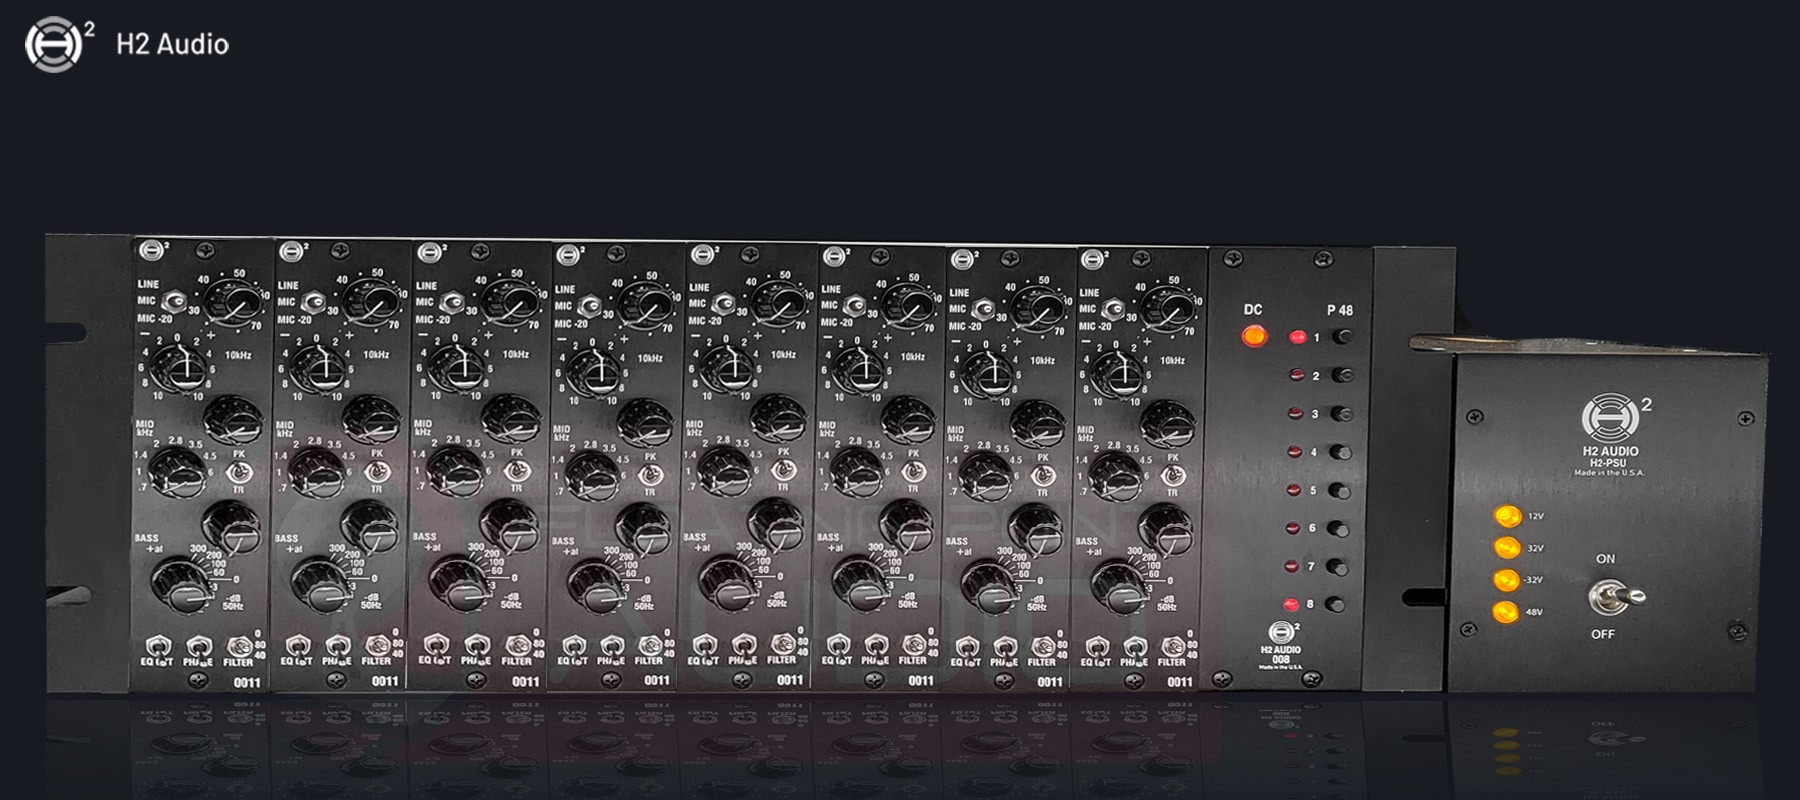 H2 Audio 008 Rack - With 0011 Modules